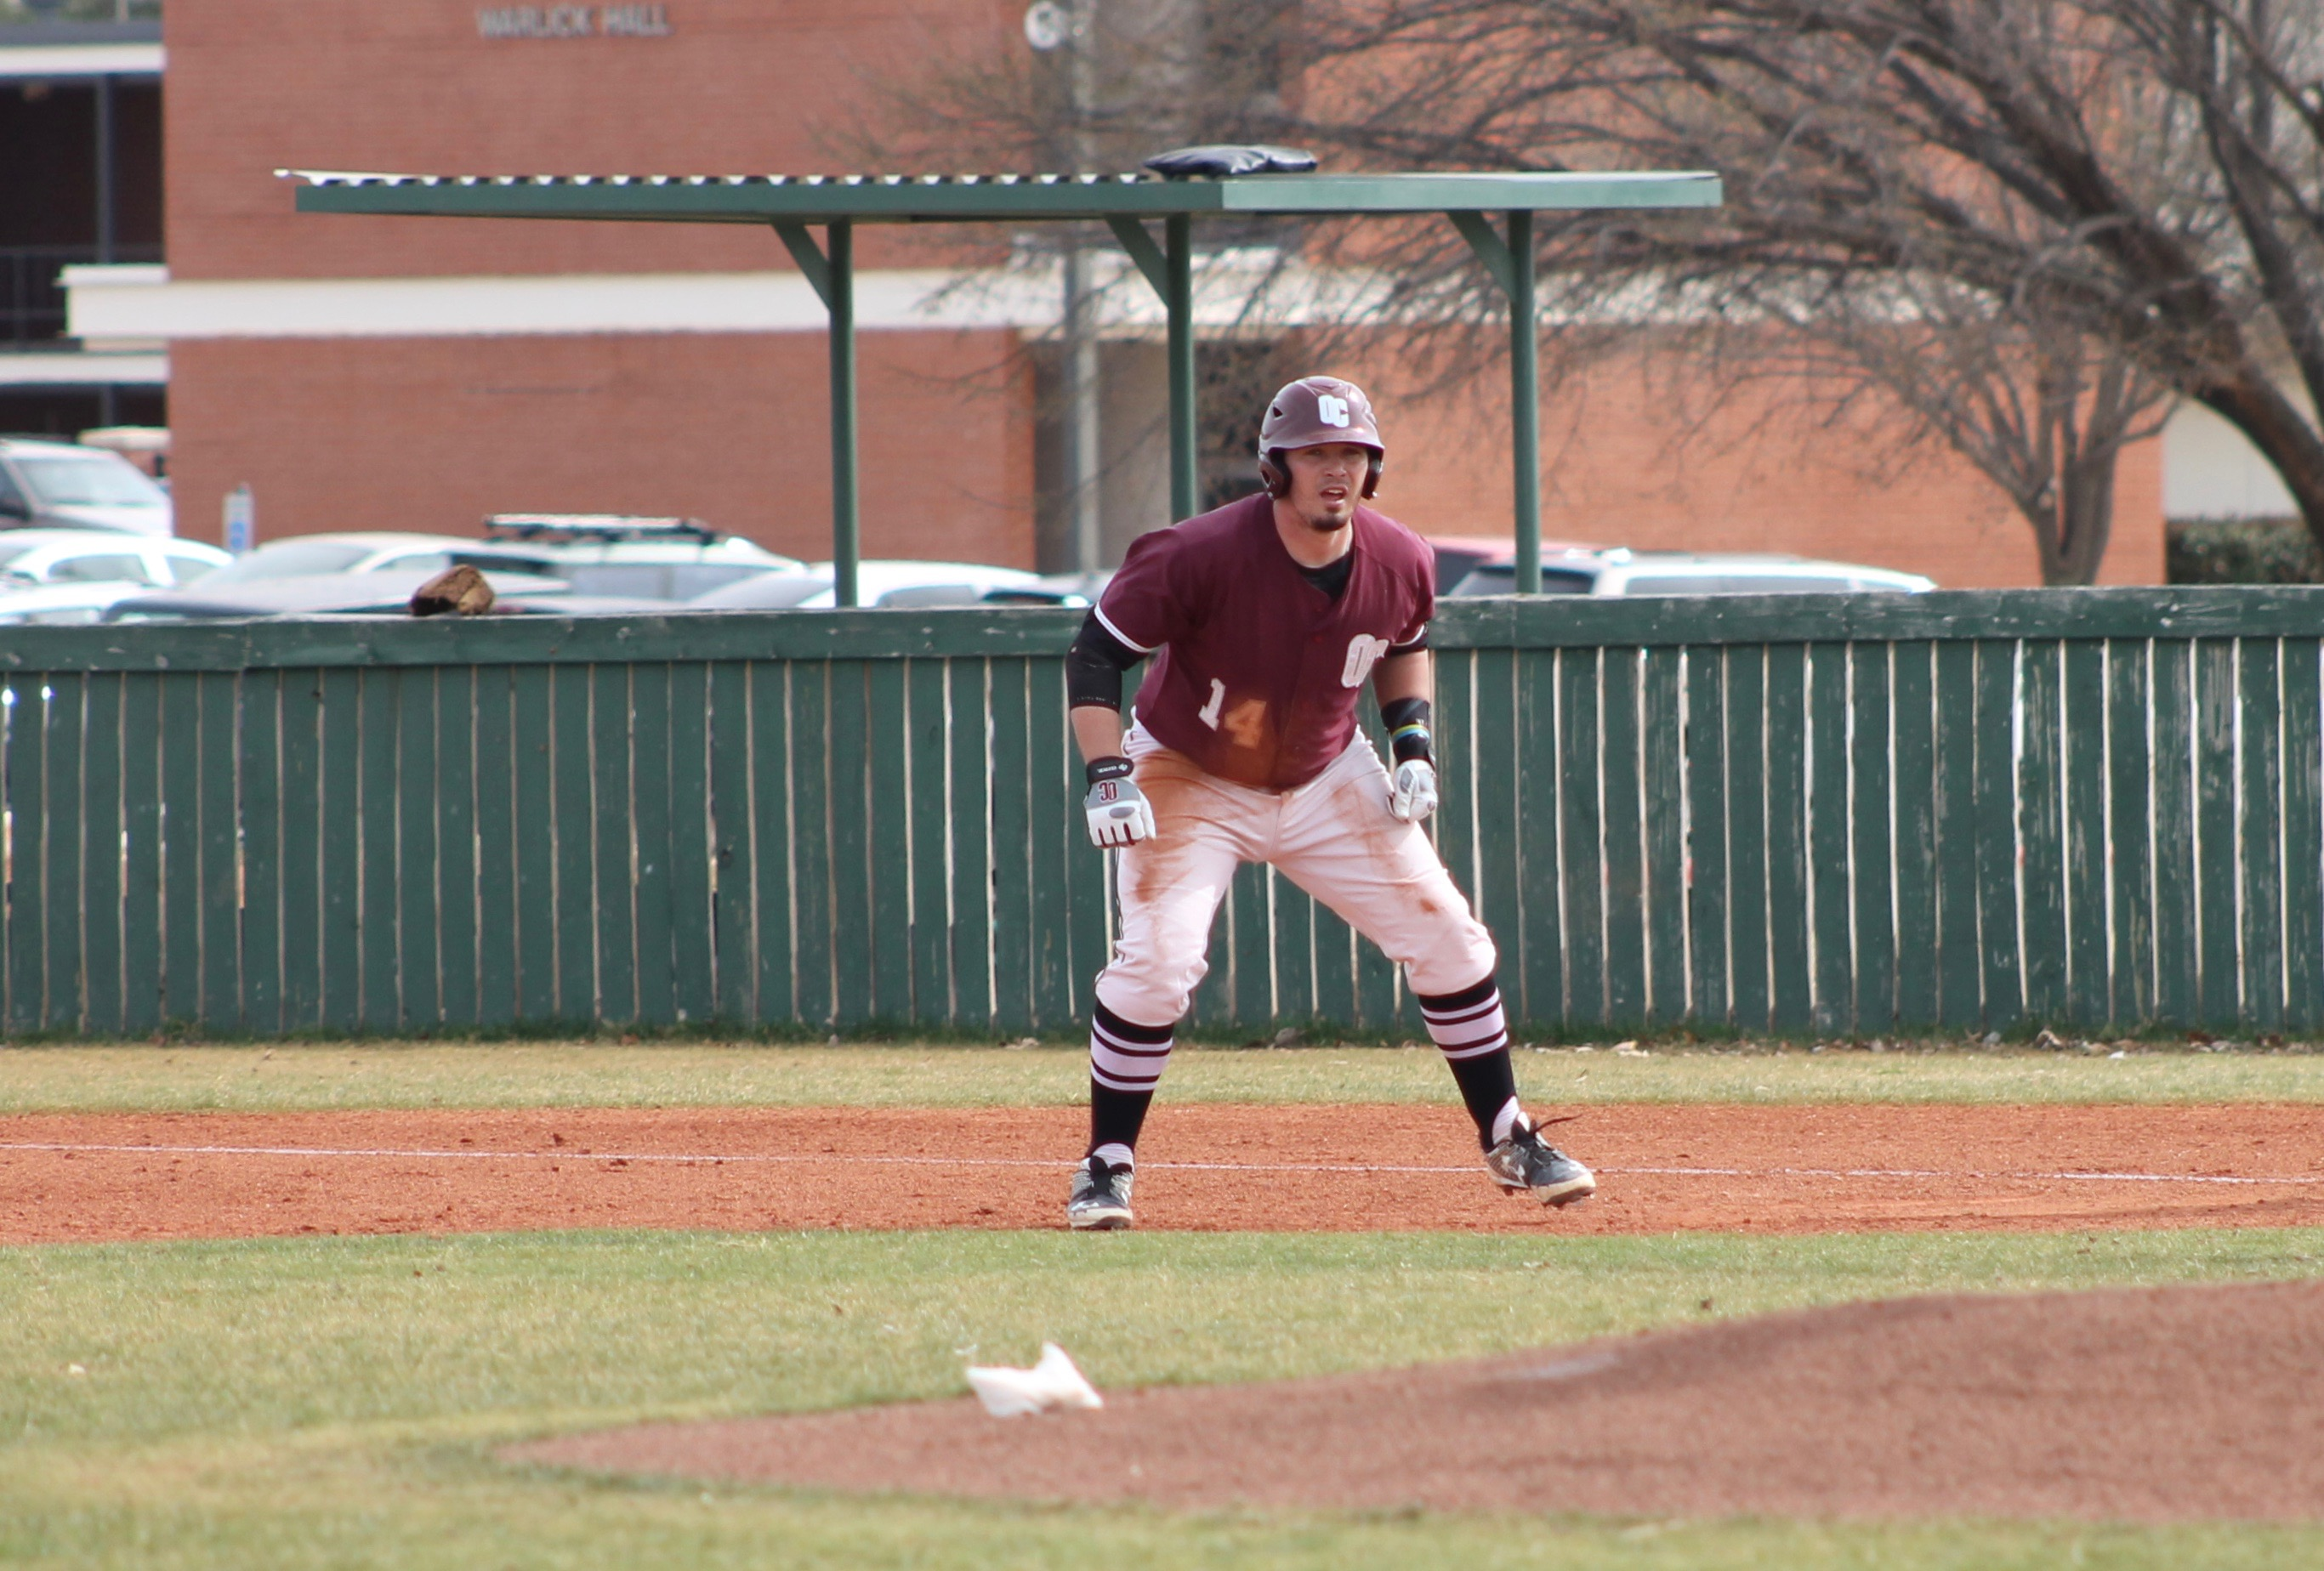 Catcher Lane Paul contributed one RBI to the Eagles at Texas-Permian Basin on April 8-9. Photo by Allyson Hazelrigg.